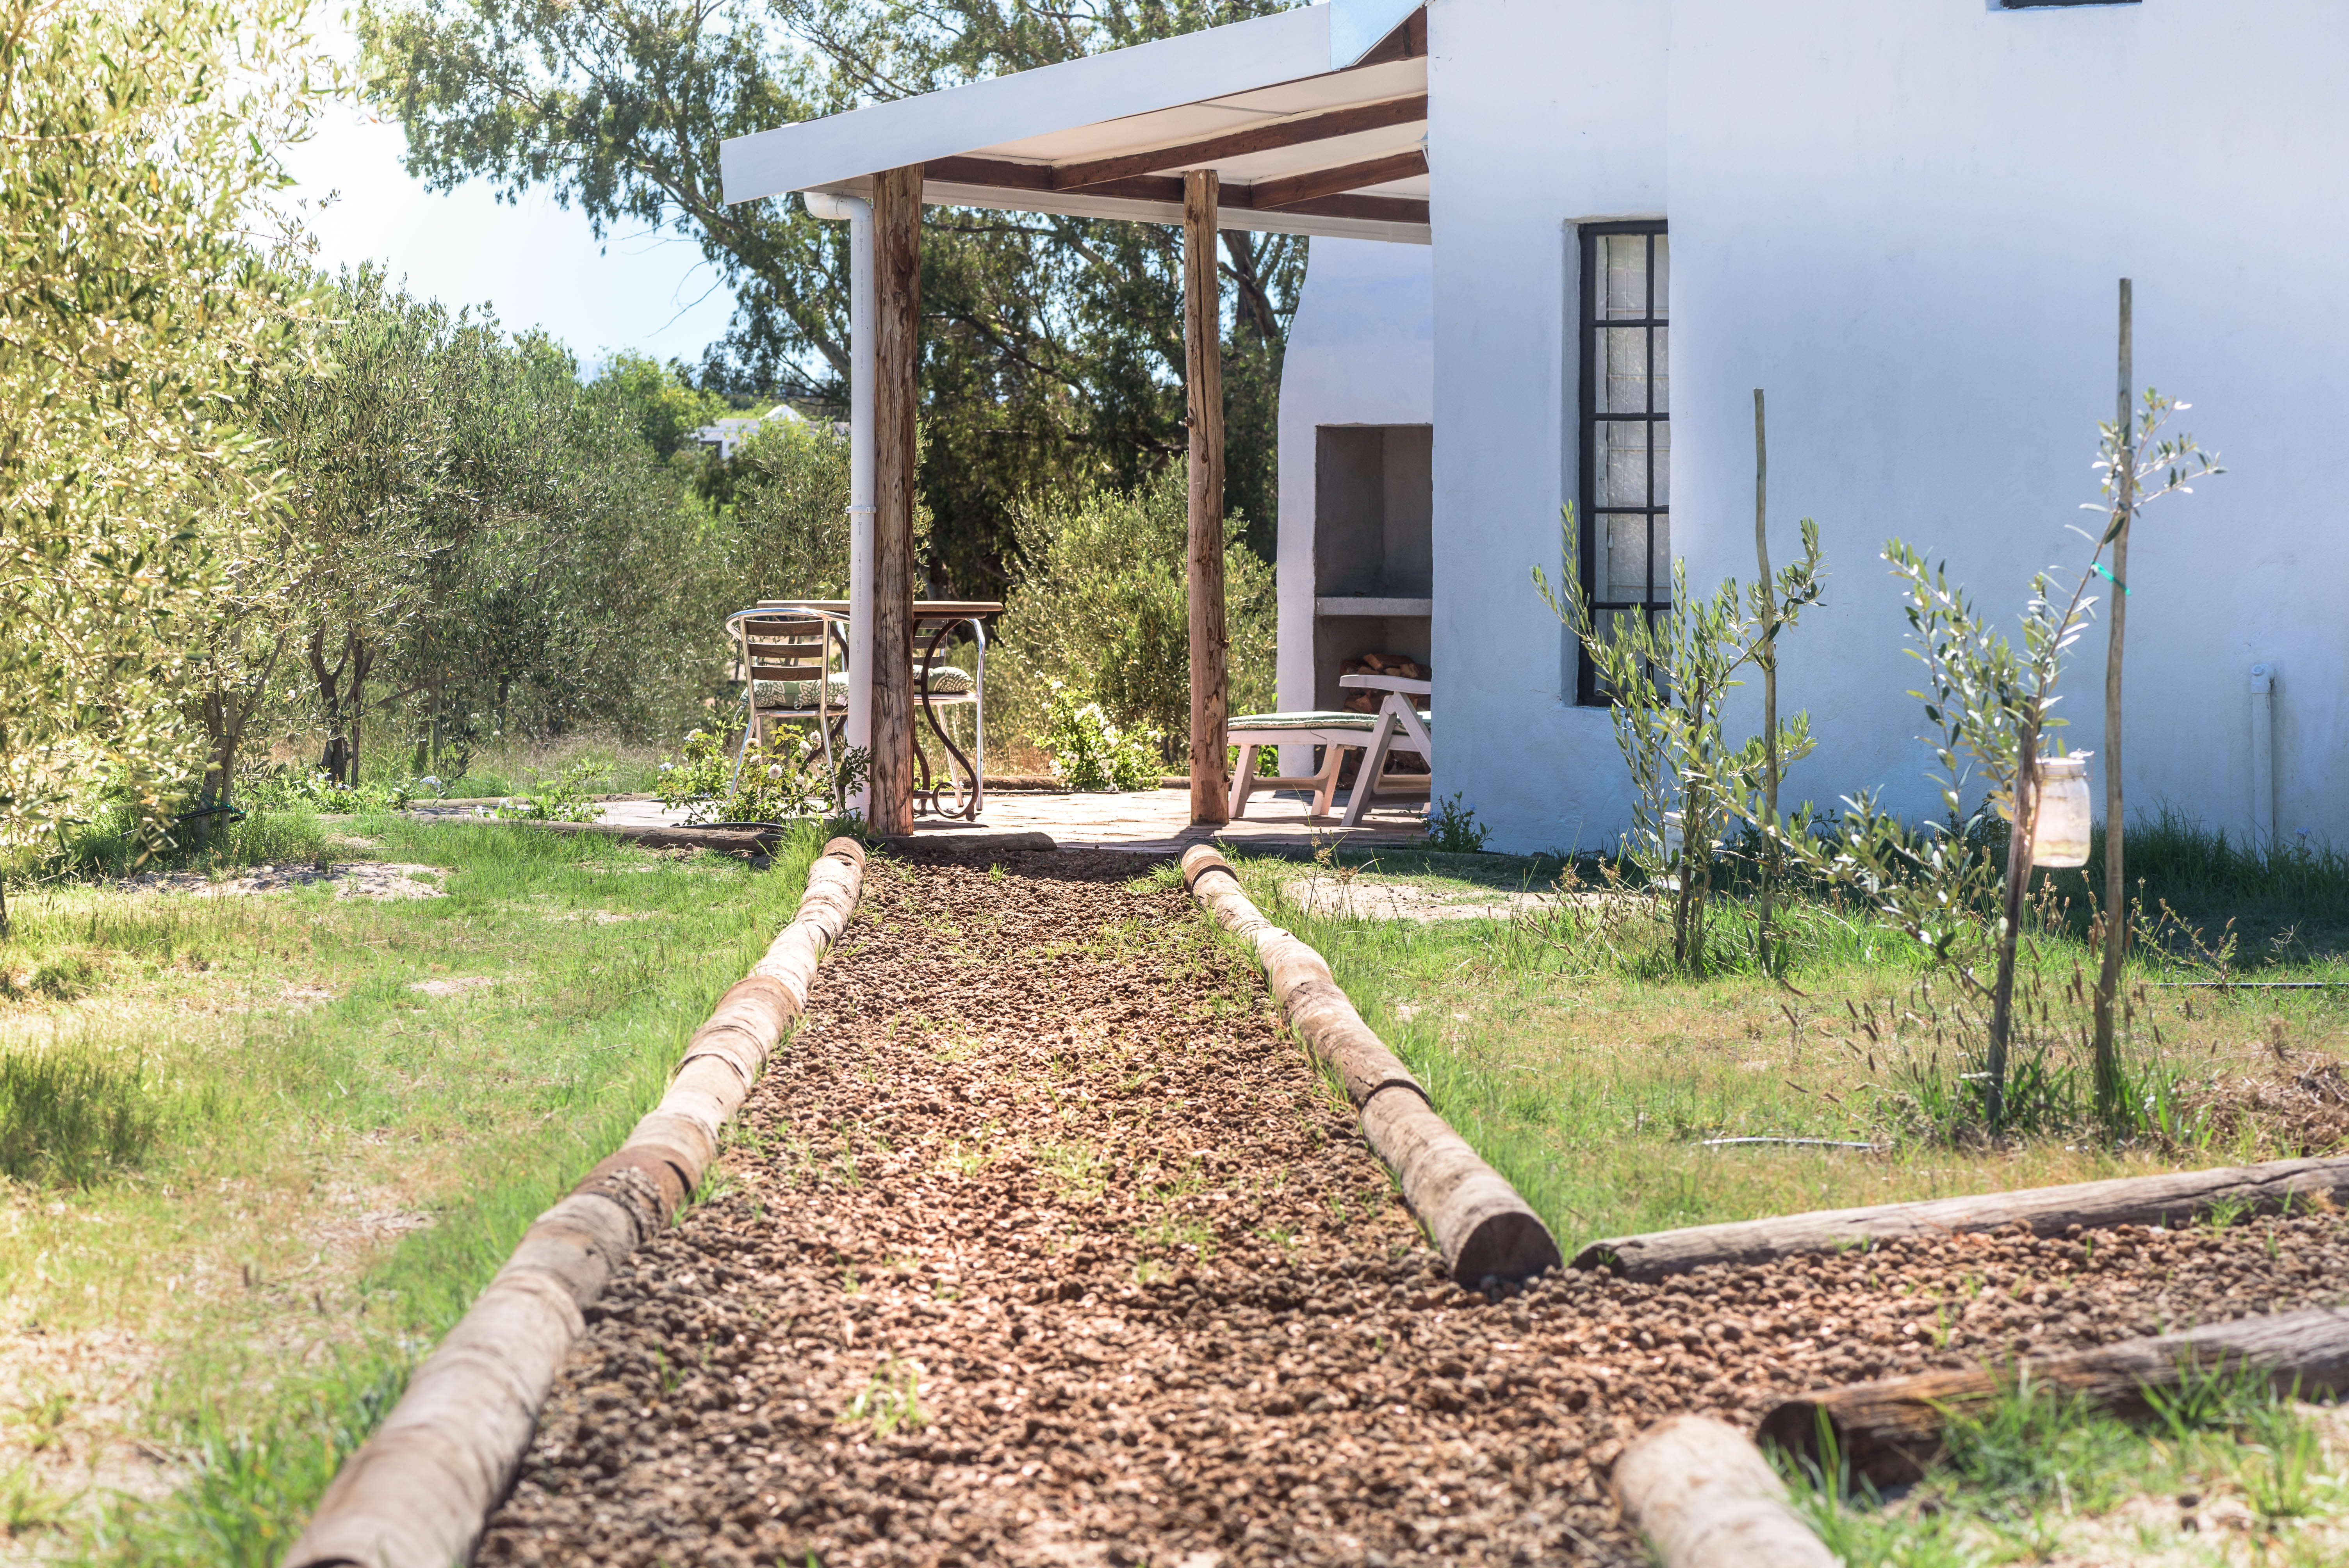 Peach-pit-path to Olive Cottage At Boerfontein